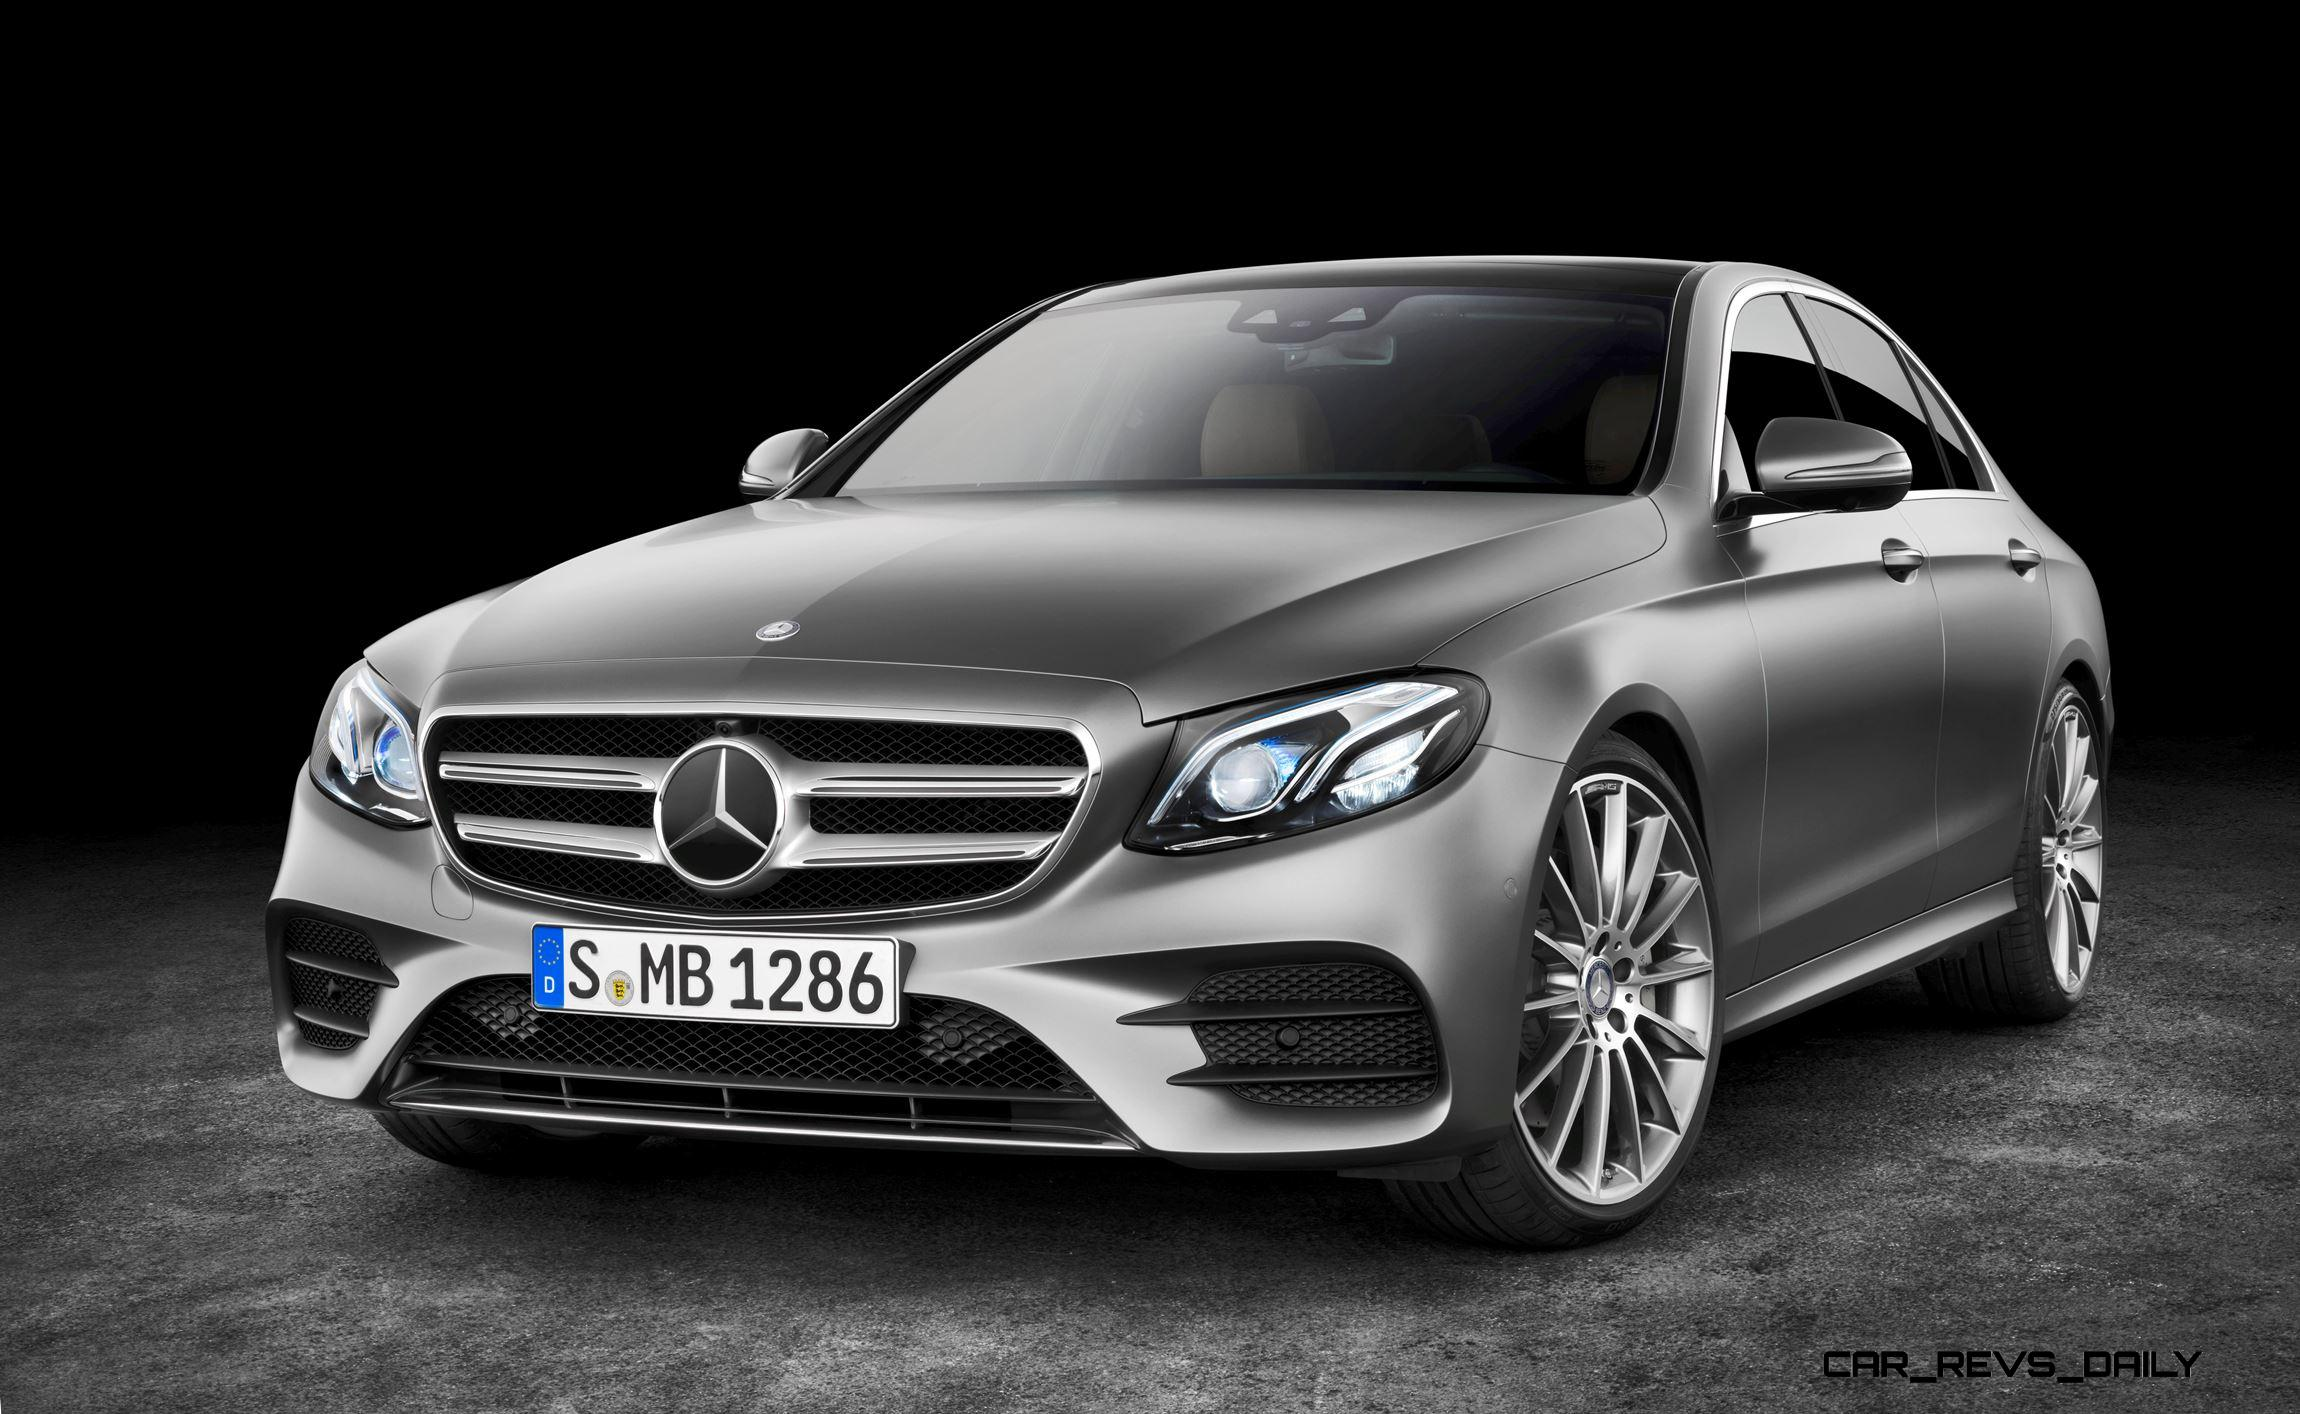 update1 2017 mercedes benz e class official debut of ultra posh new cabin all new exterior. Black Bedroom Furniture Sets. Home Design Ideas